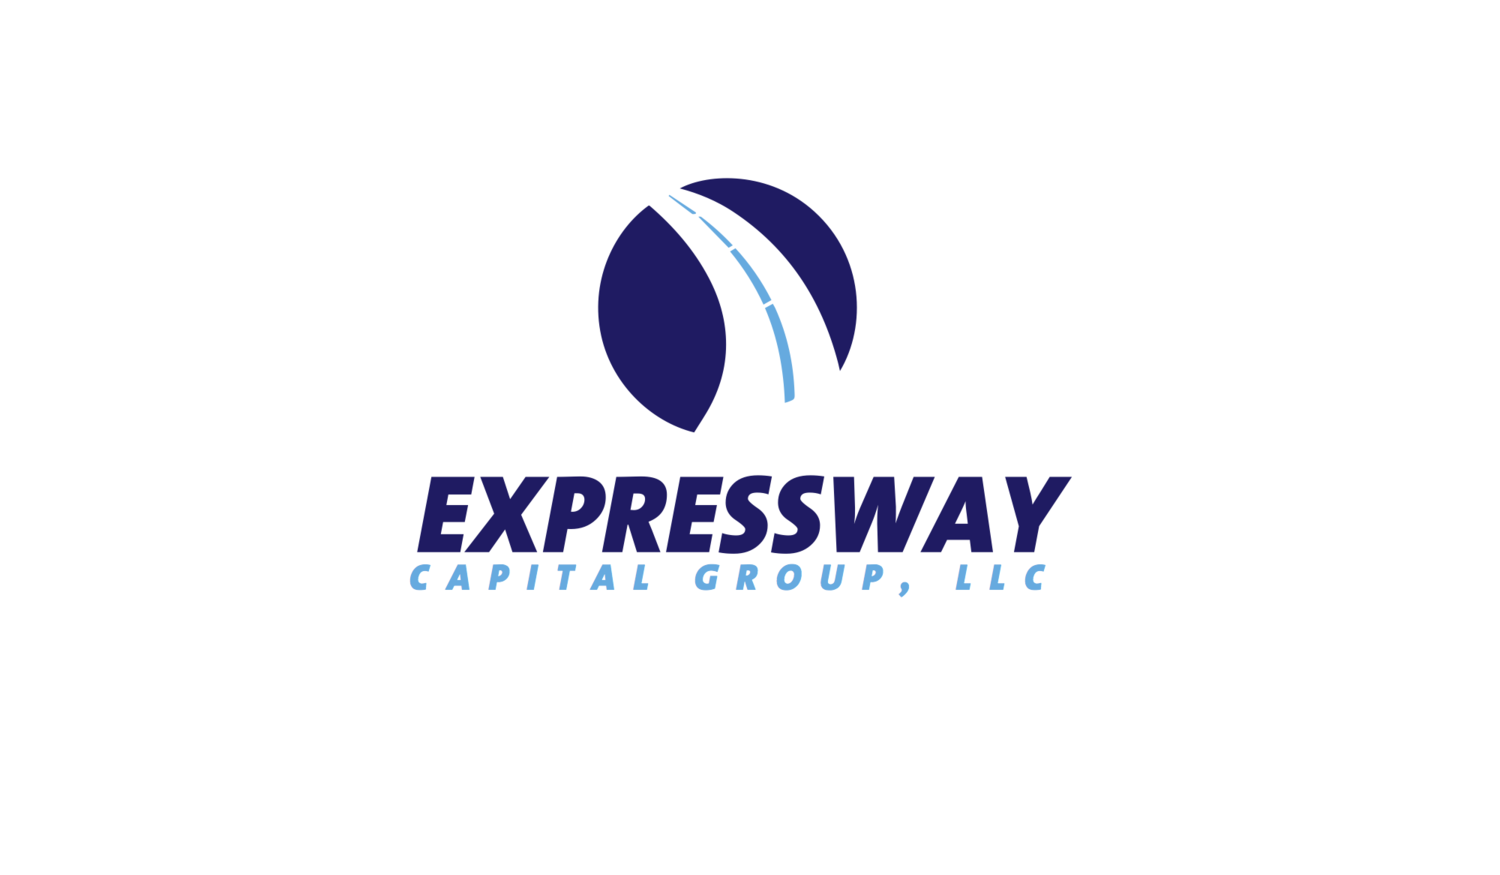 Expressway Capital Group